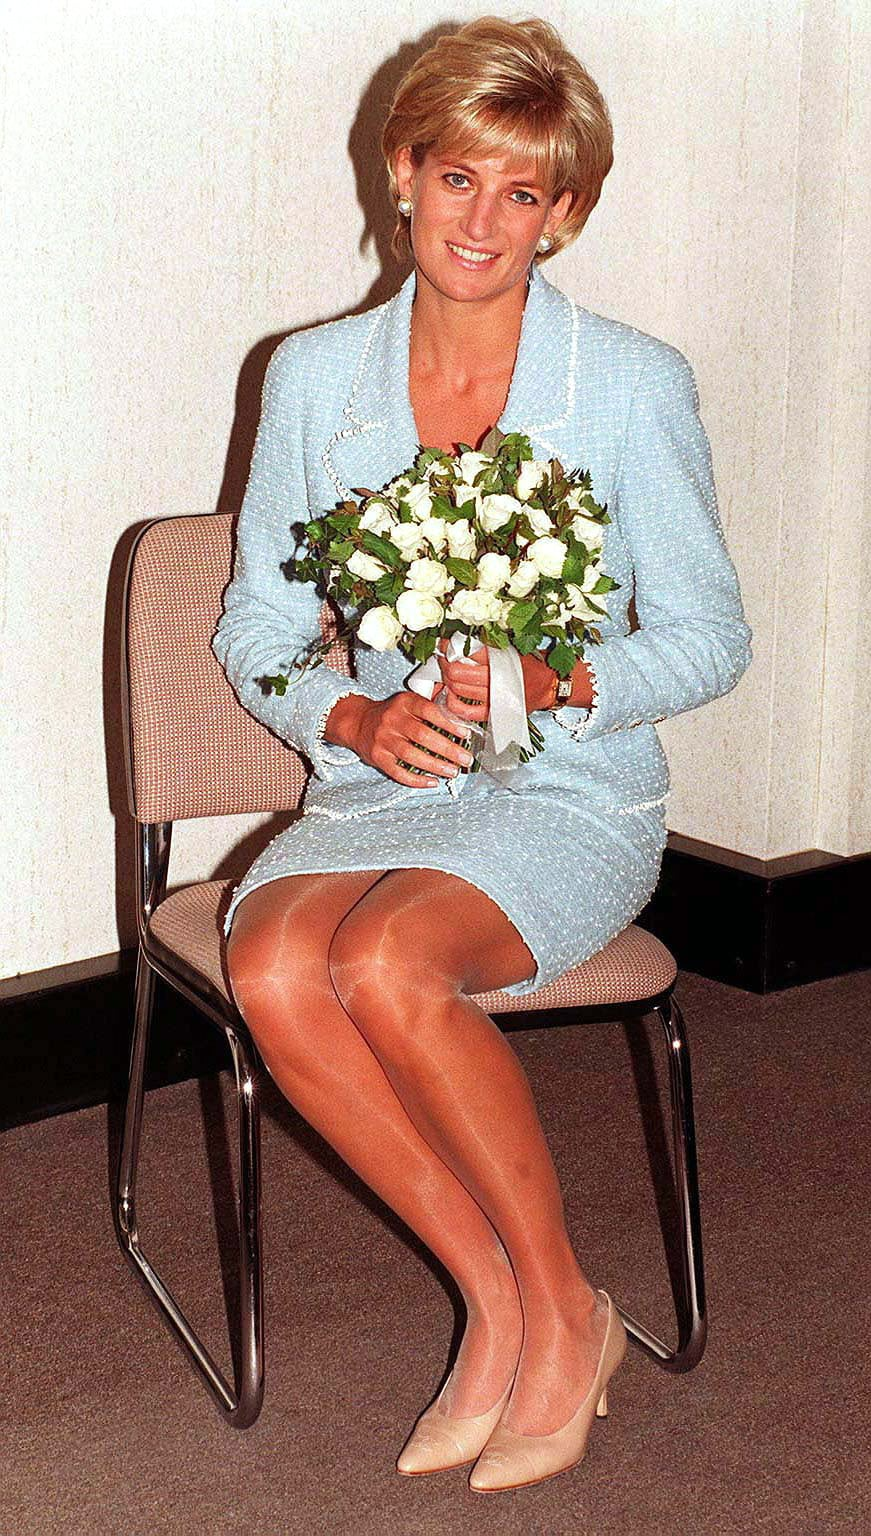 LONDON - APRIL 21: Diana, Princess of Wales is presented with the first rose to be named after her at the British Lung Foundation offices on April 21, 1997 in London, England. It is hoped that sales of the rose, which goes on public display for the first time at the Chelsea Flower Show next month, will raise thousands of pounds for research into lung diseases. (Photo by Anwar Hussein/WireImage)